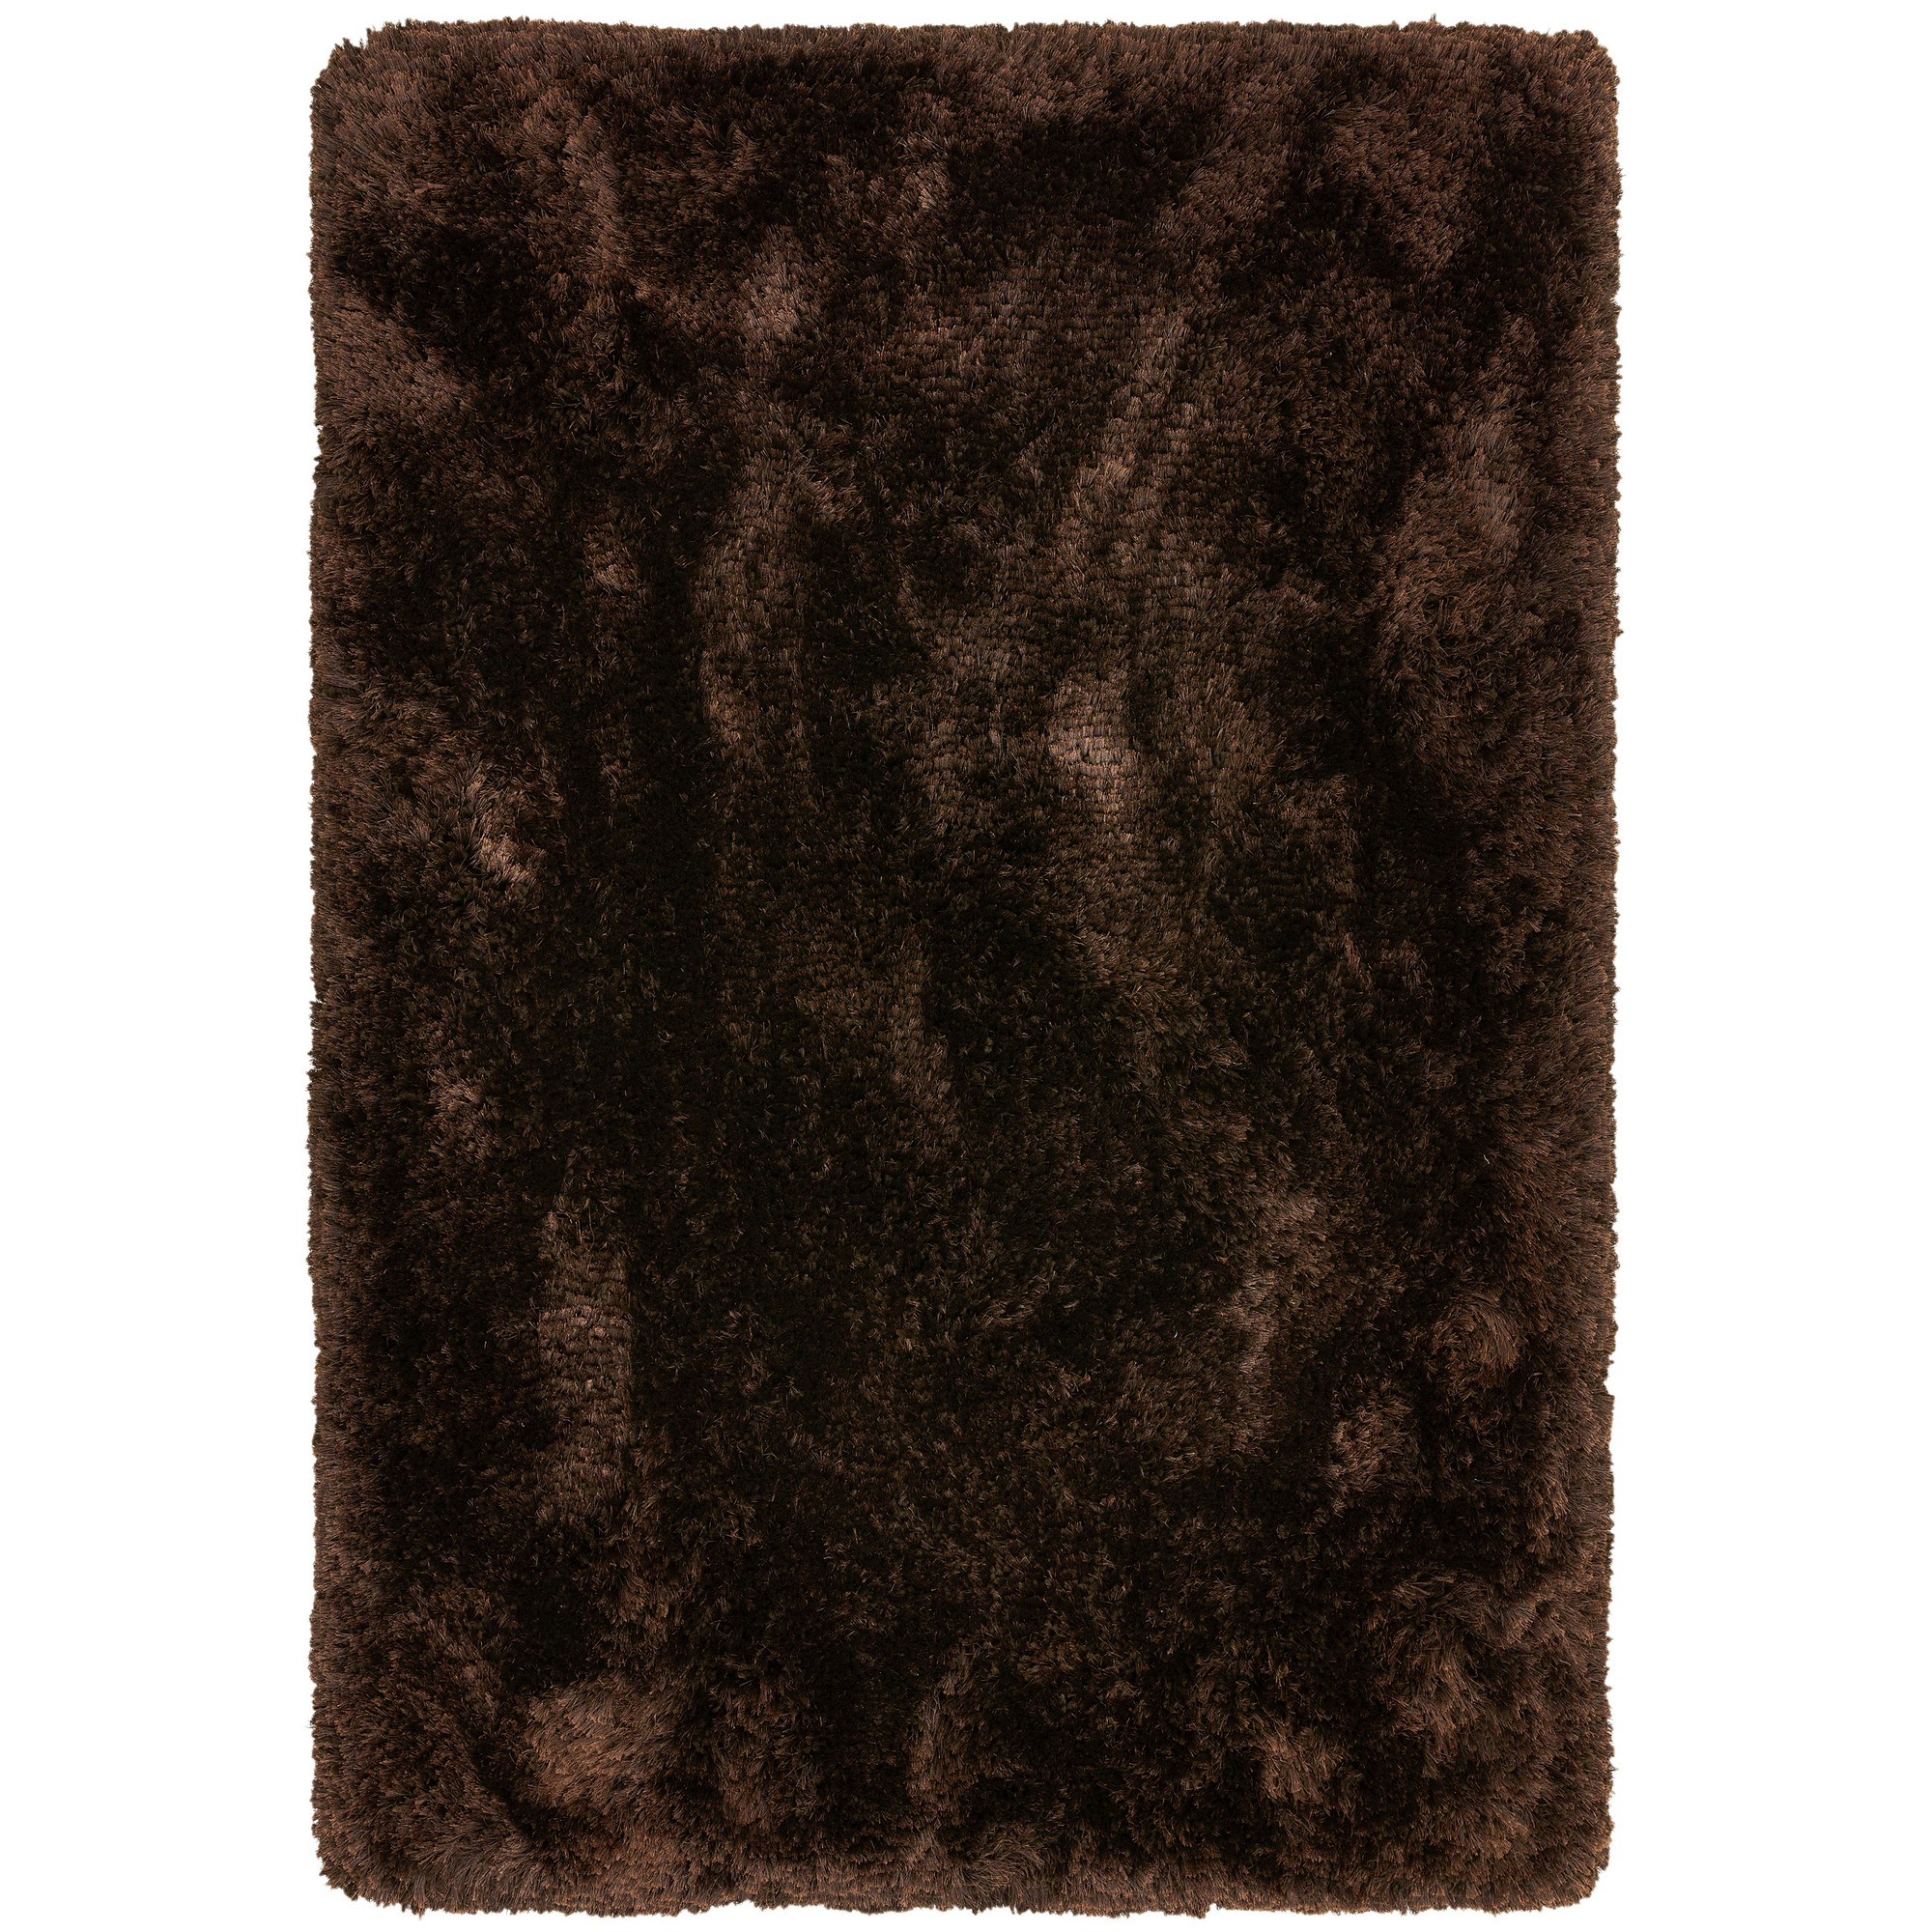 Plush Shaggy Rugs In Dark Chocolate Brown